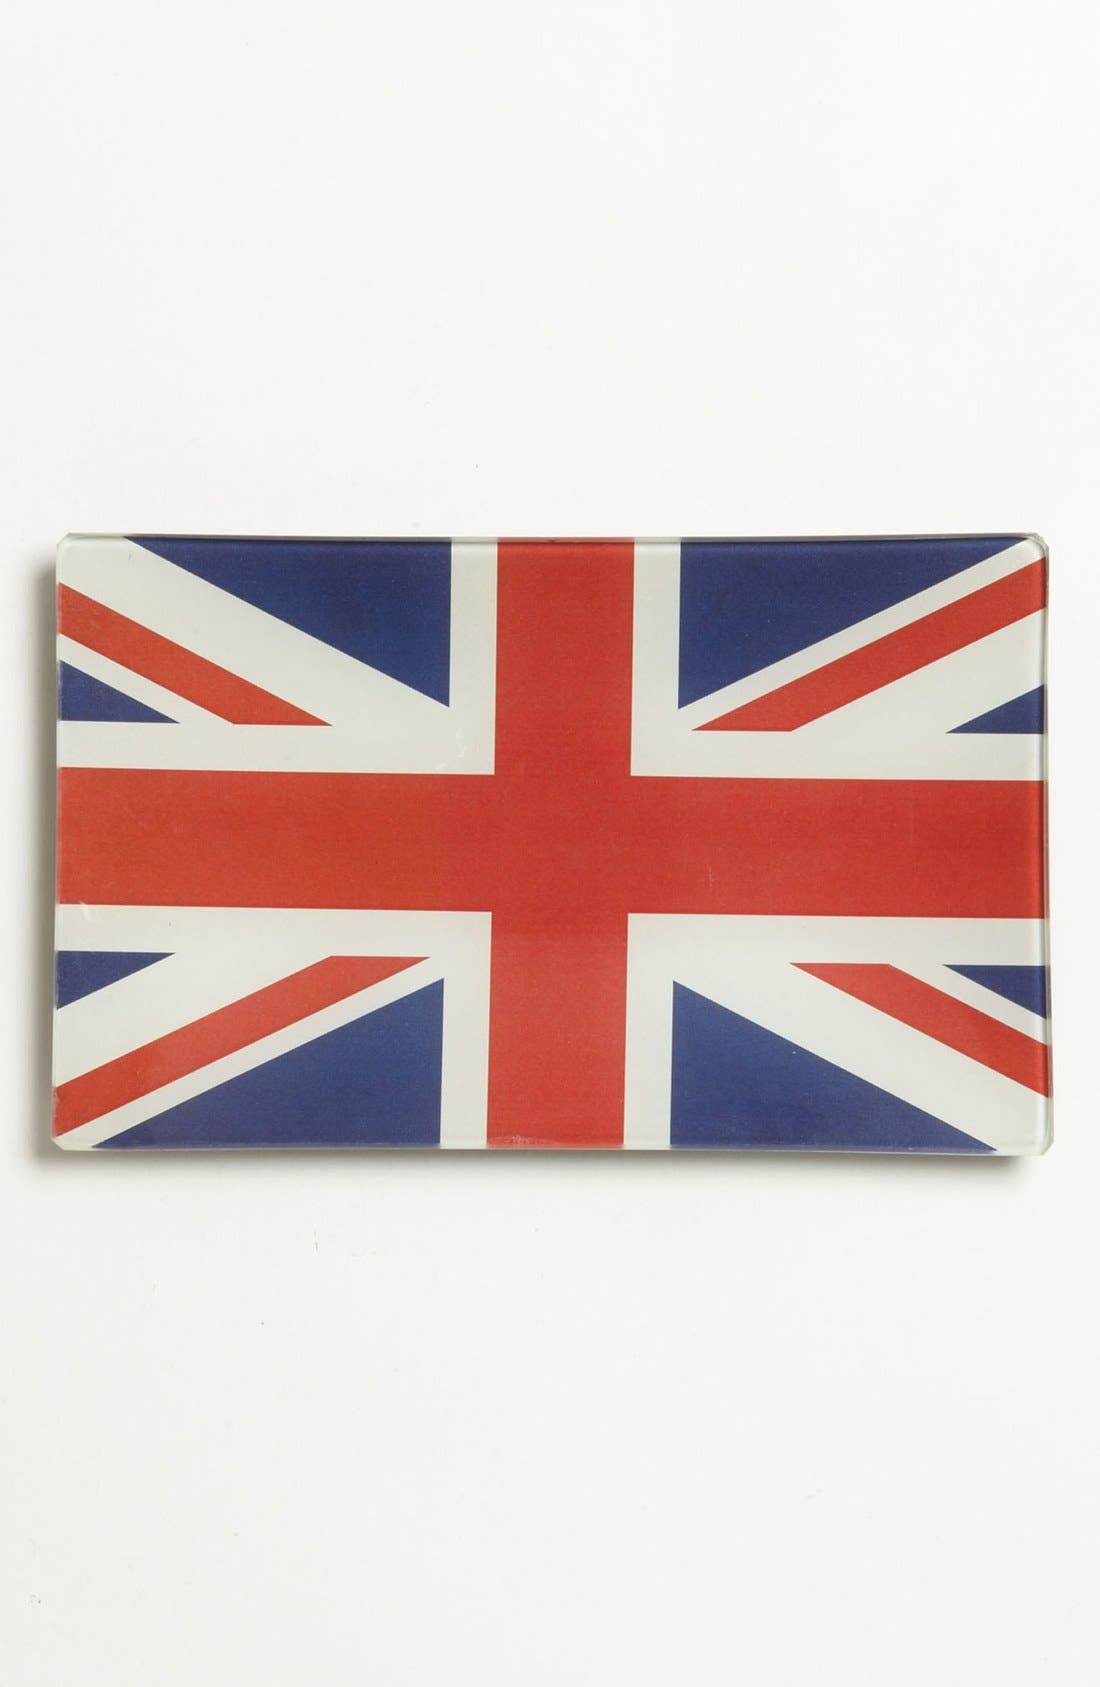 Alternate Image 1 Selected - Ben's Garden 'Union Jack' Trinket Tray